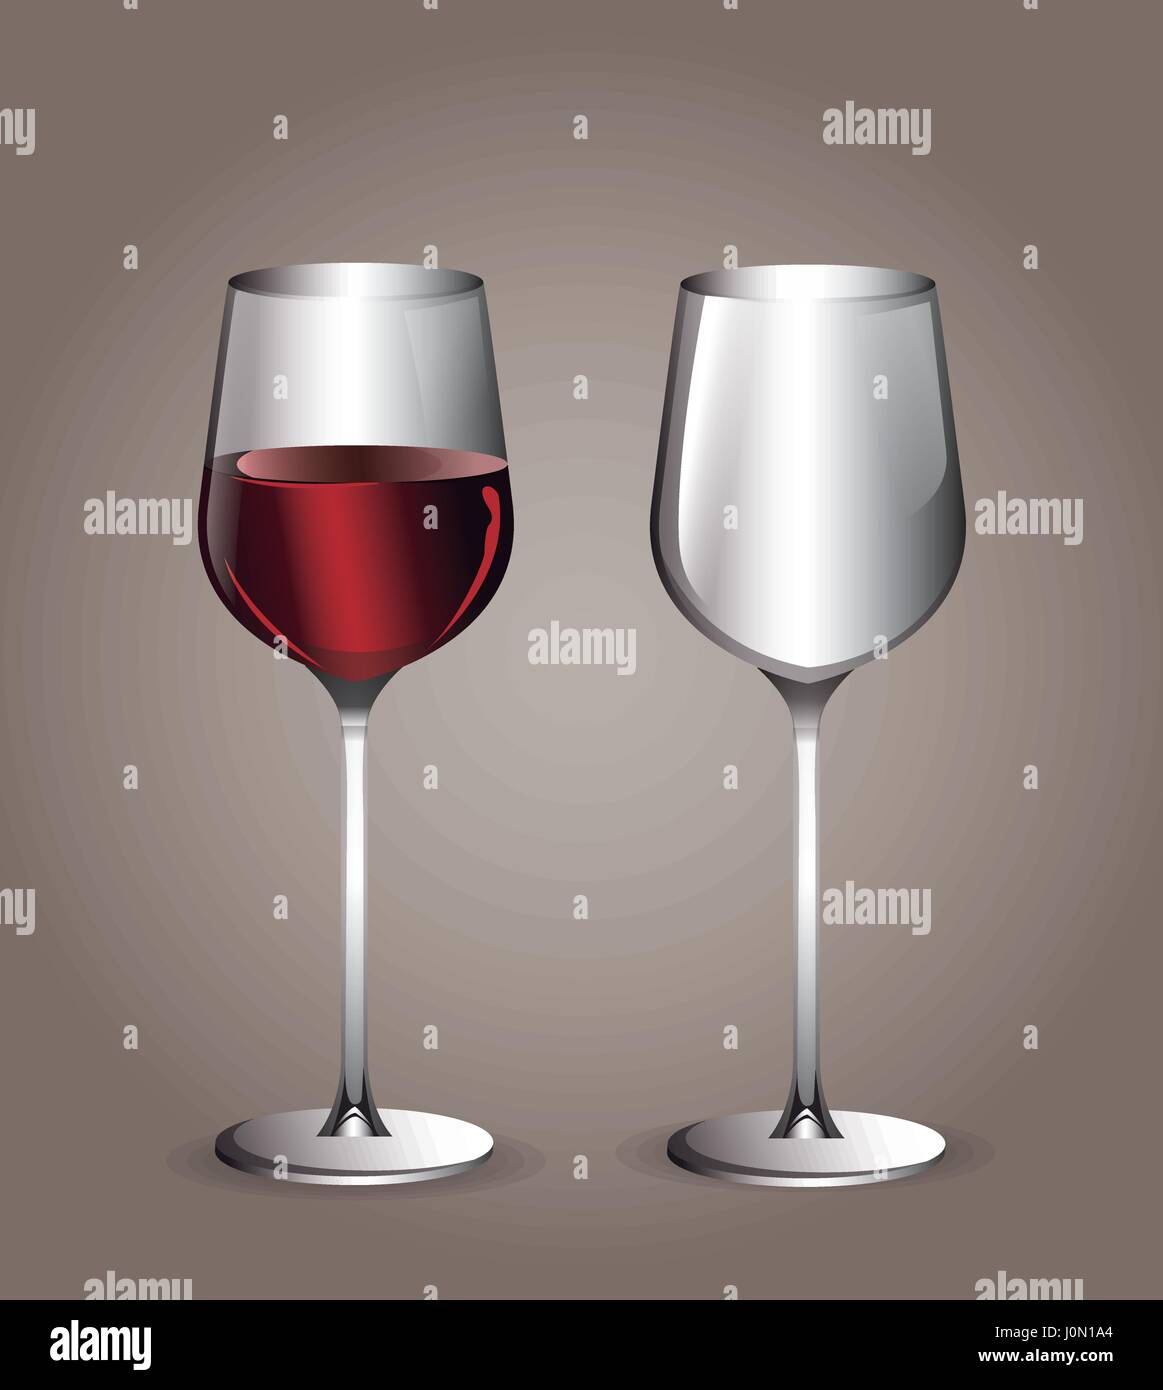 glass cup wine transparent image - Stock Image